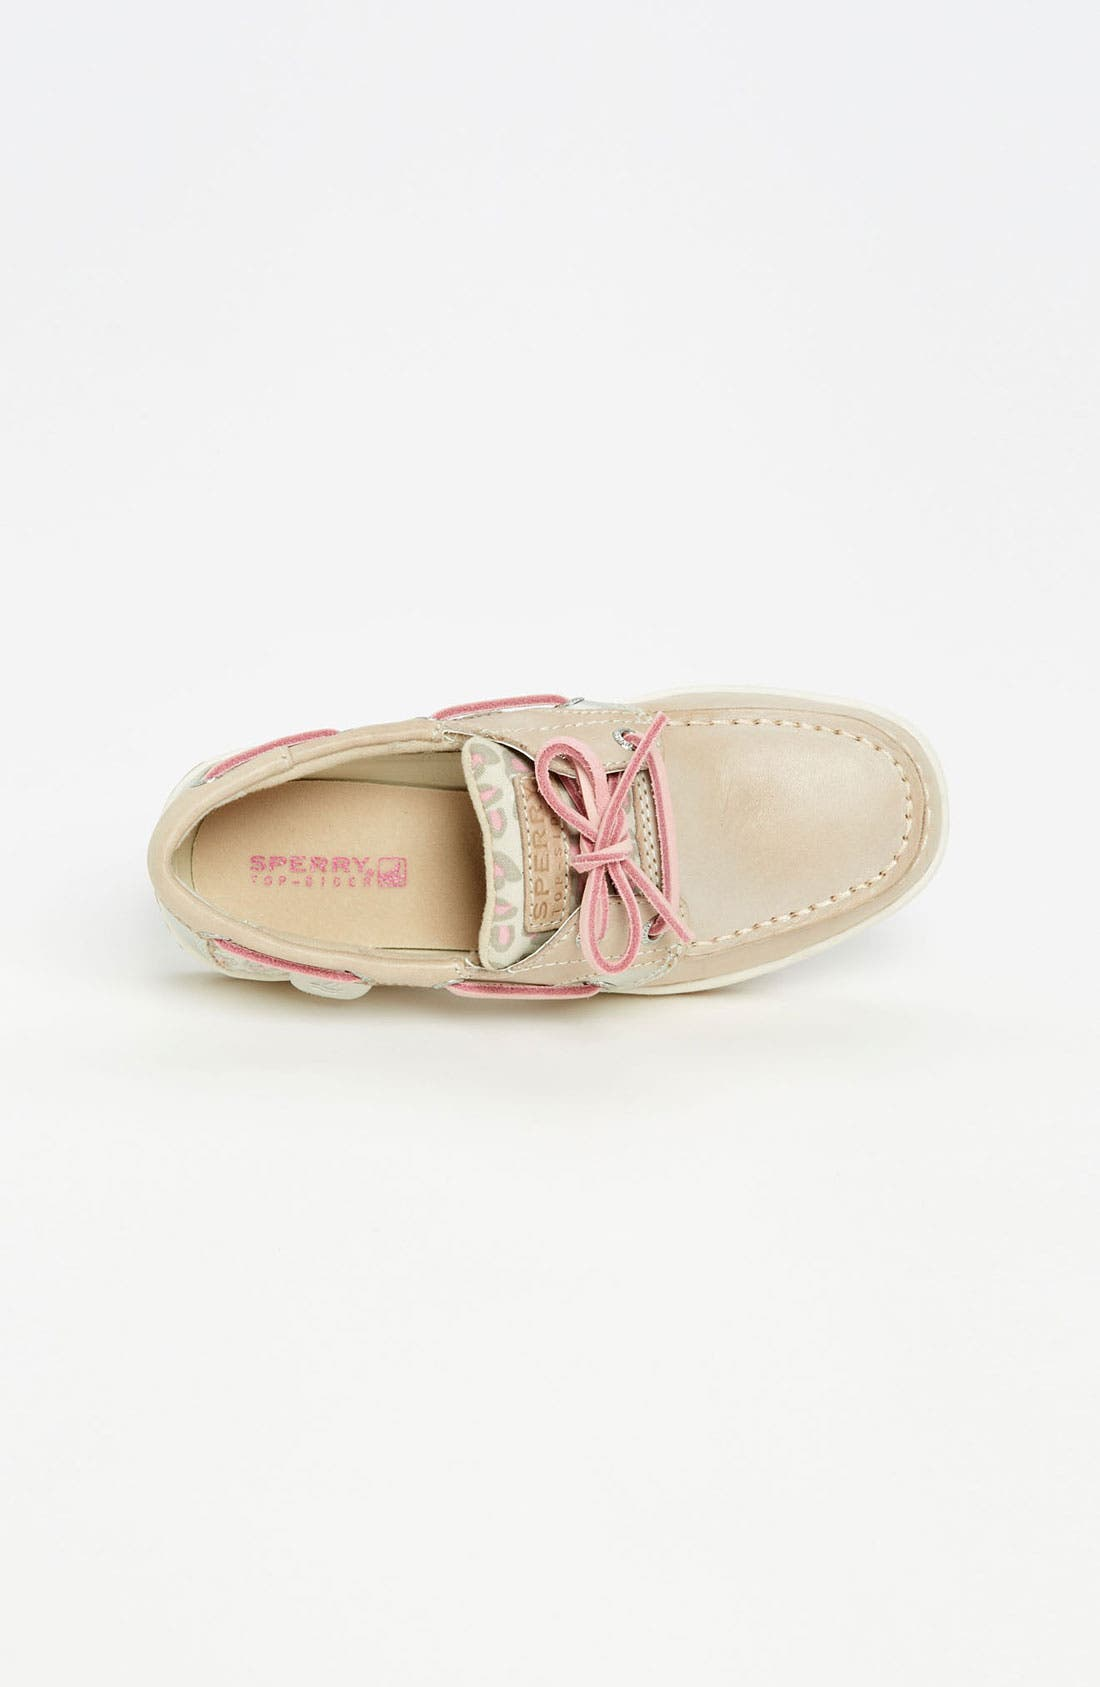 Alternate Image 3  - Sperry Top-Sider® 'Bluefish' Boat Shoe (Walker, Toddler, Little Kid & Big Kid)